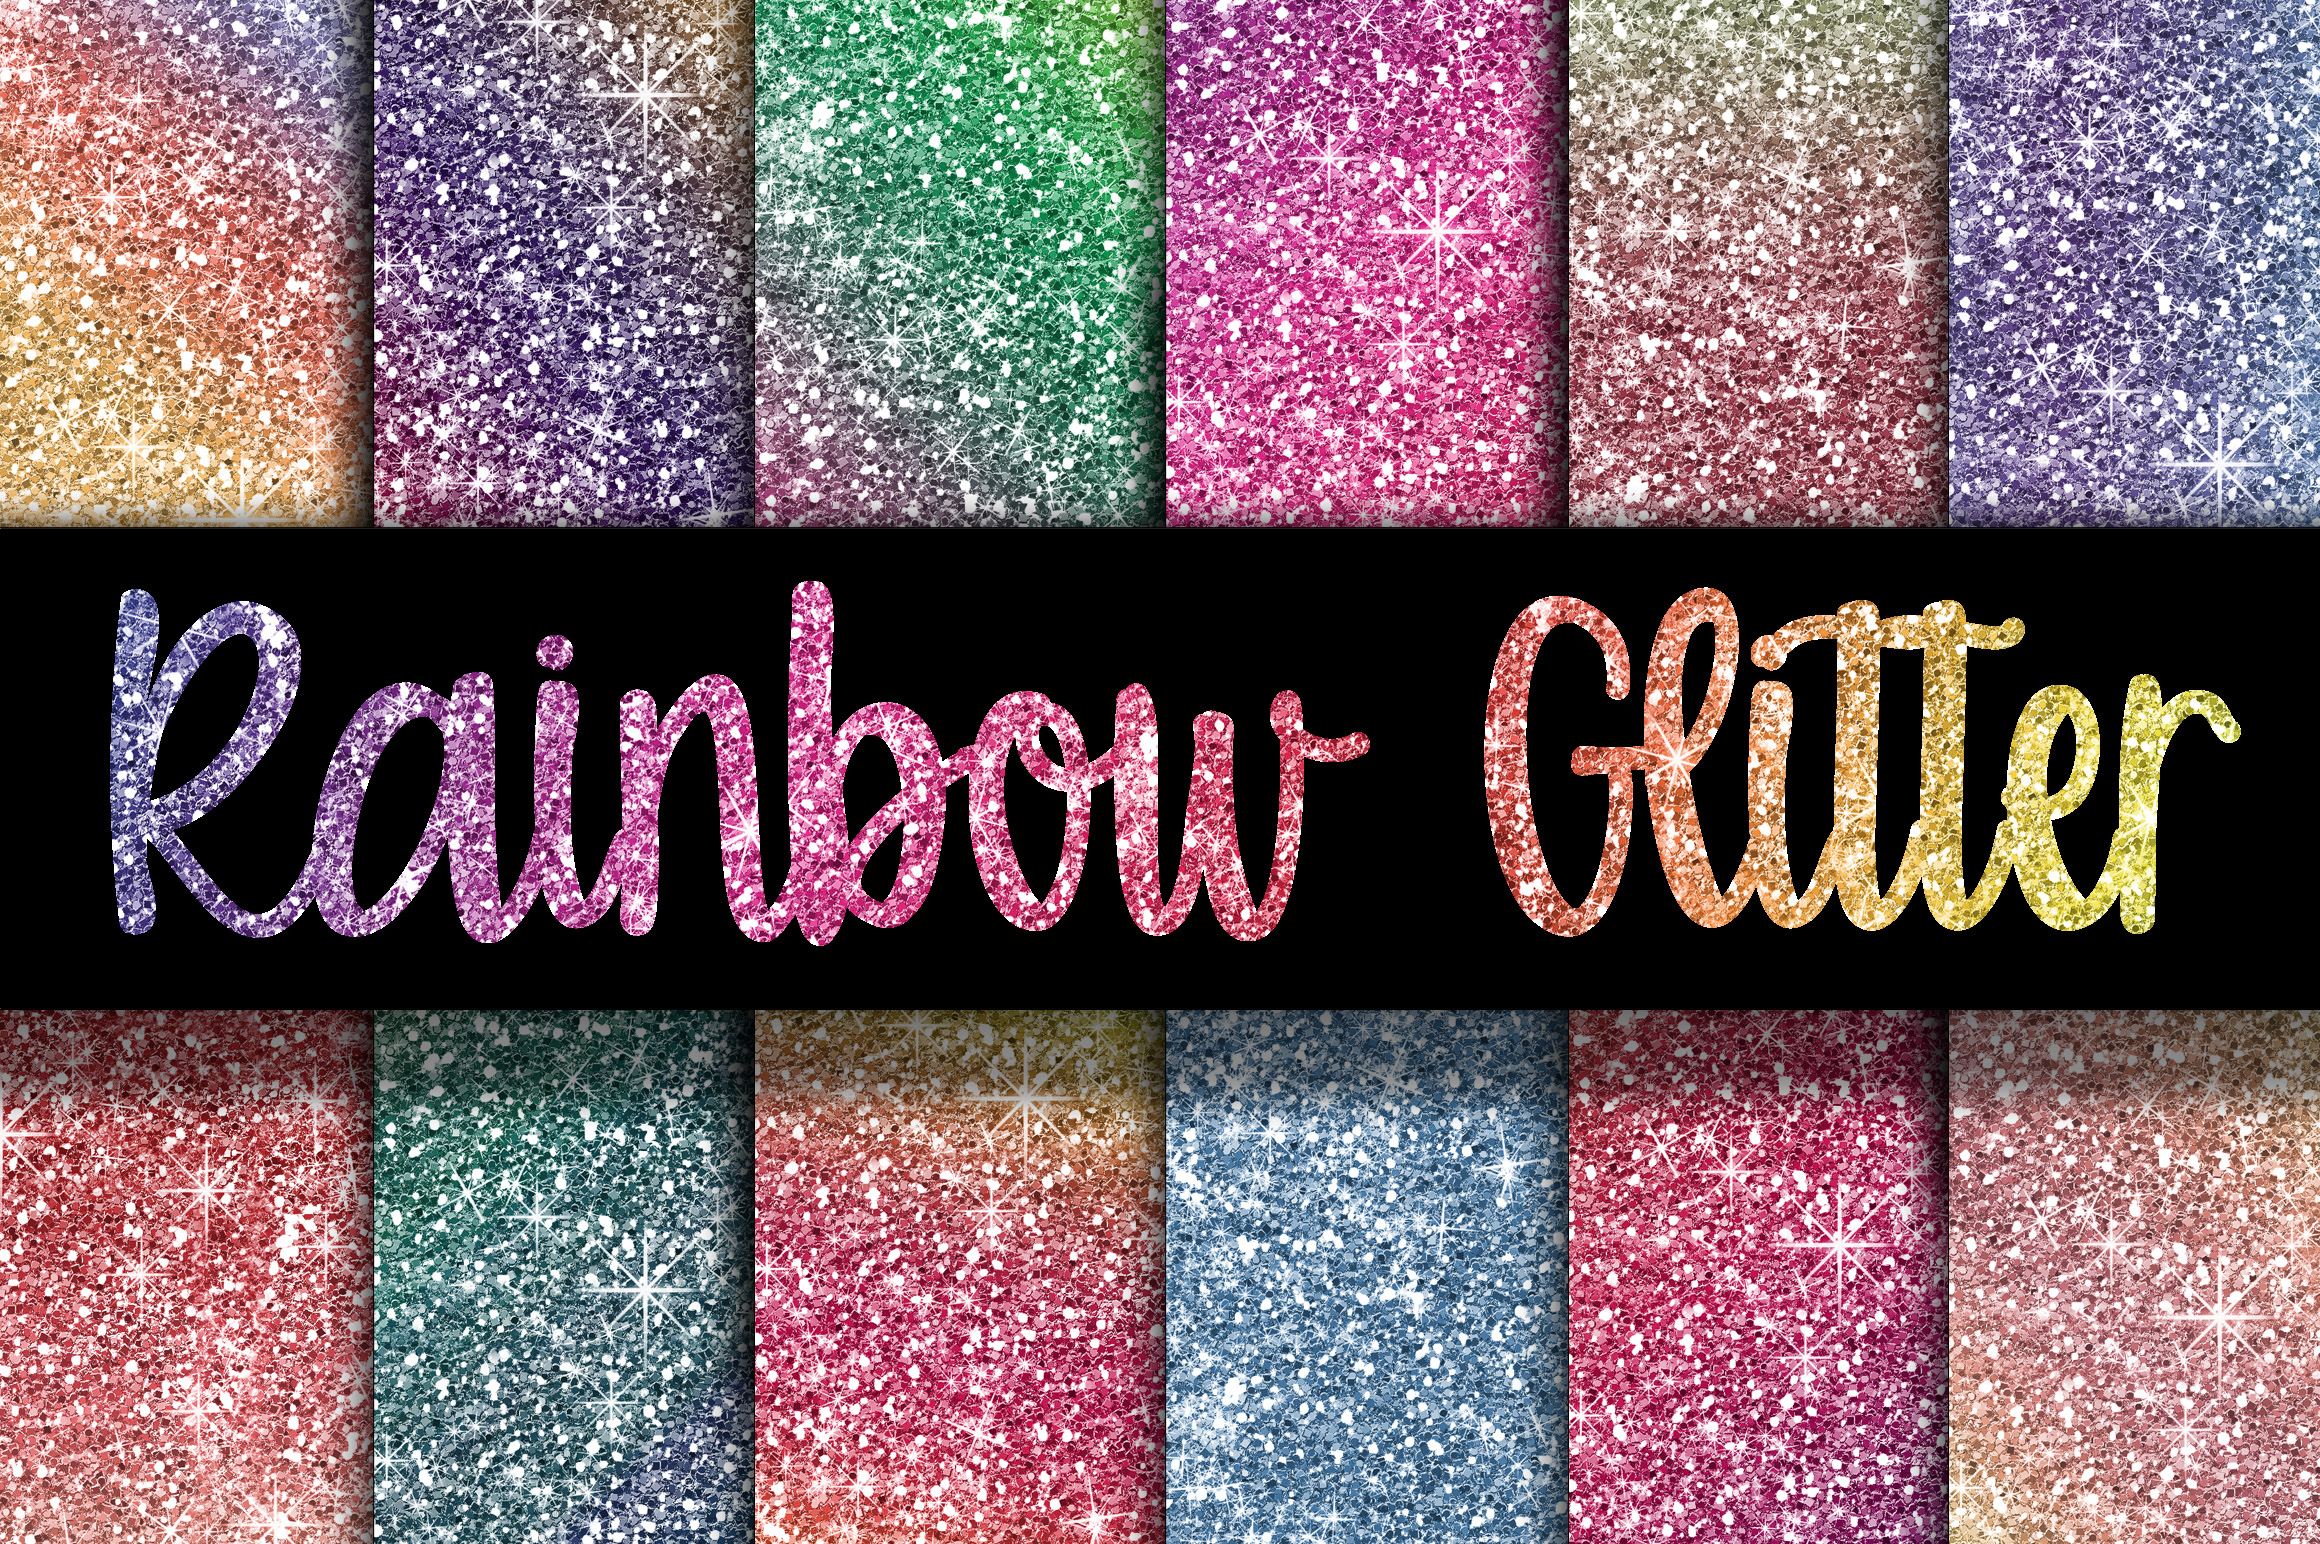 Rainbow Glitter Digital Paper Textures Graphic By oldmarketdesigns